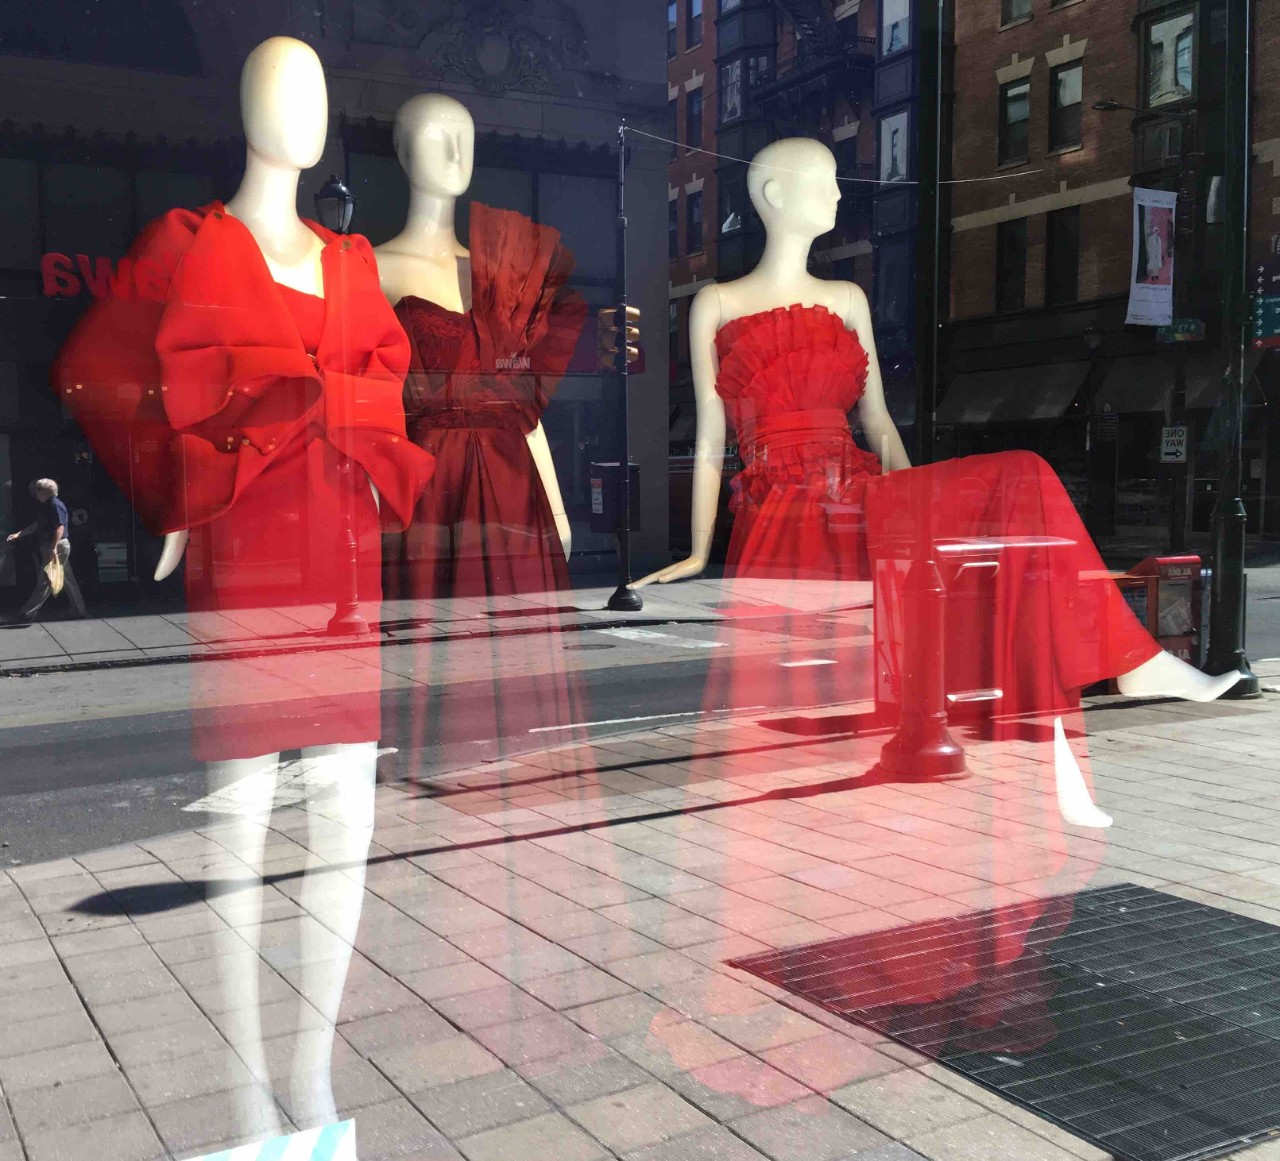 Red dresses on display at Macy's window